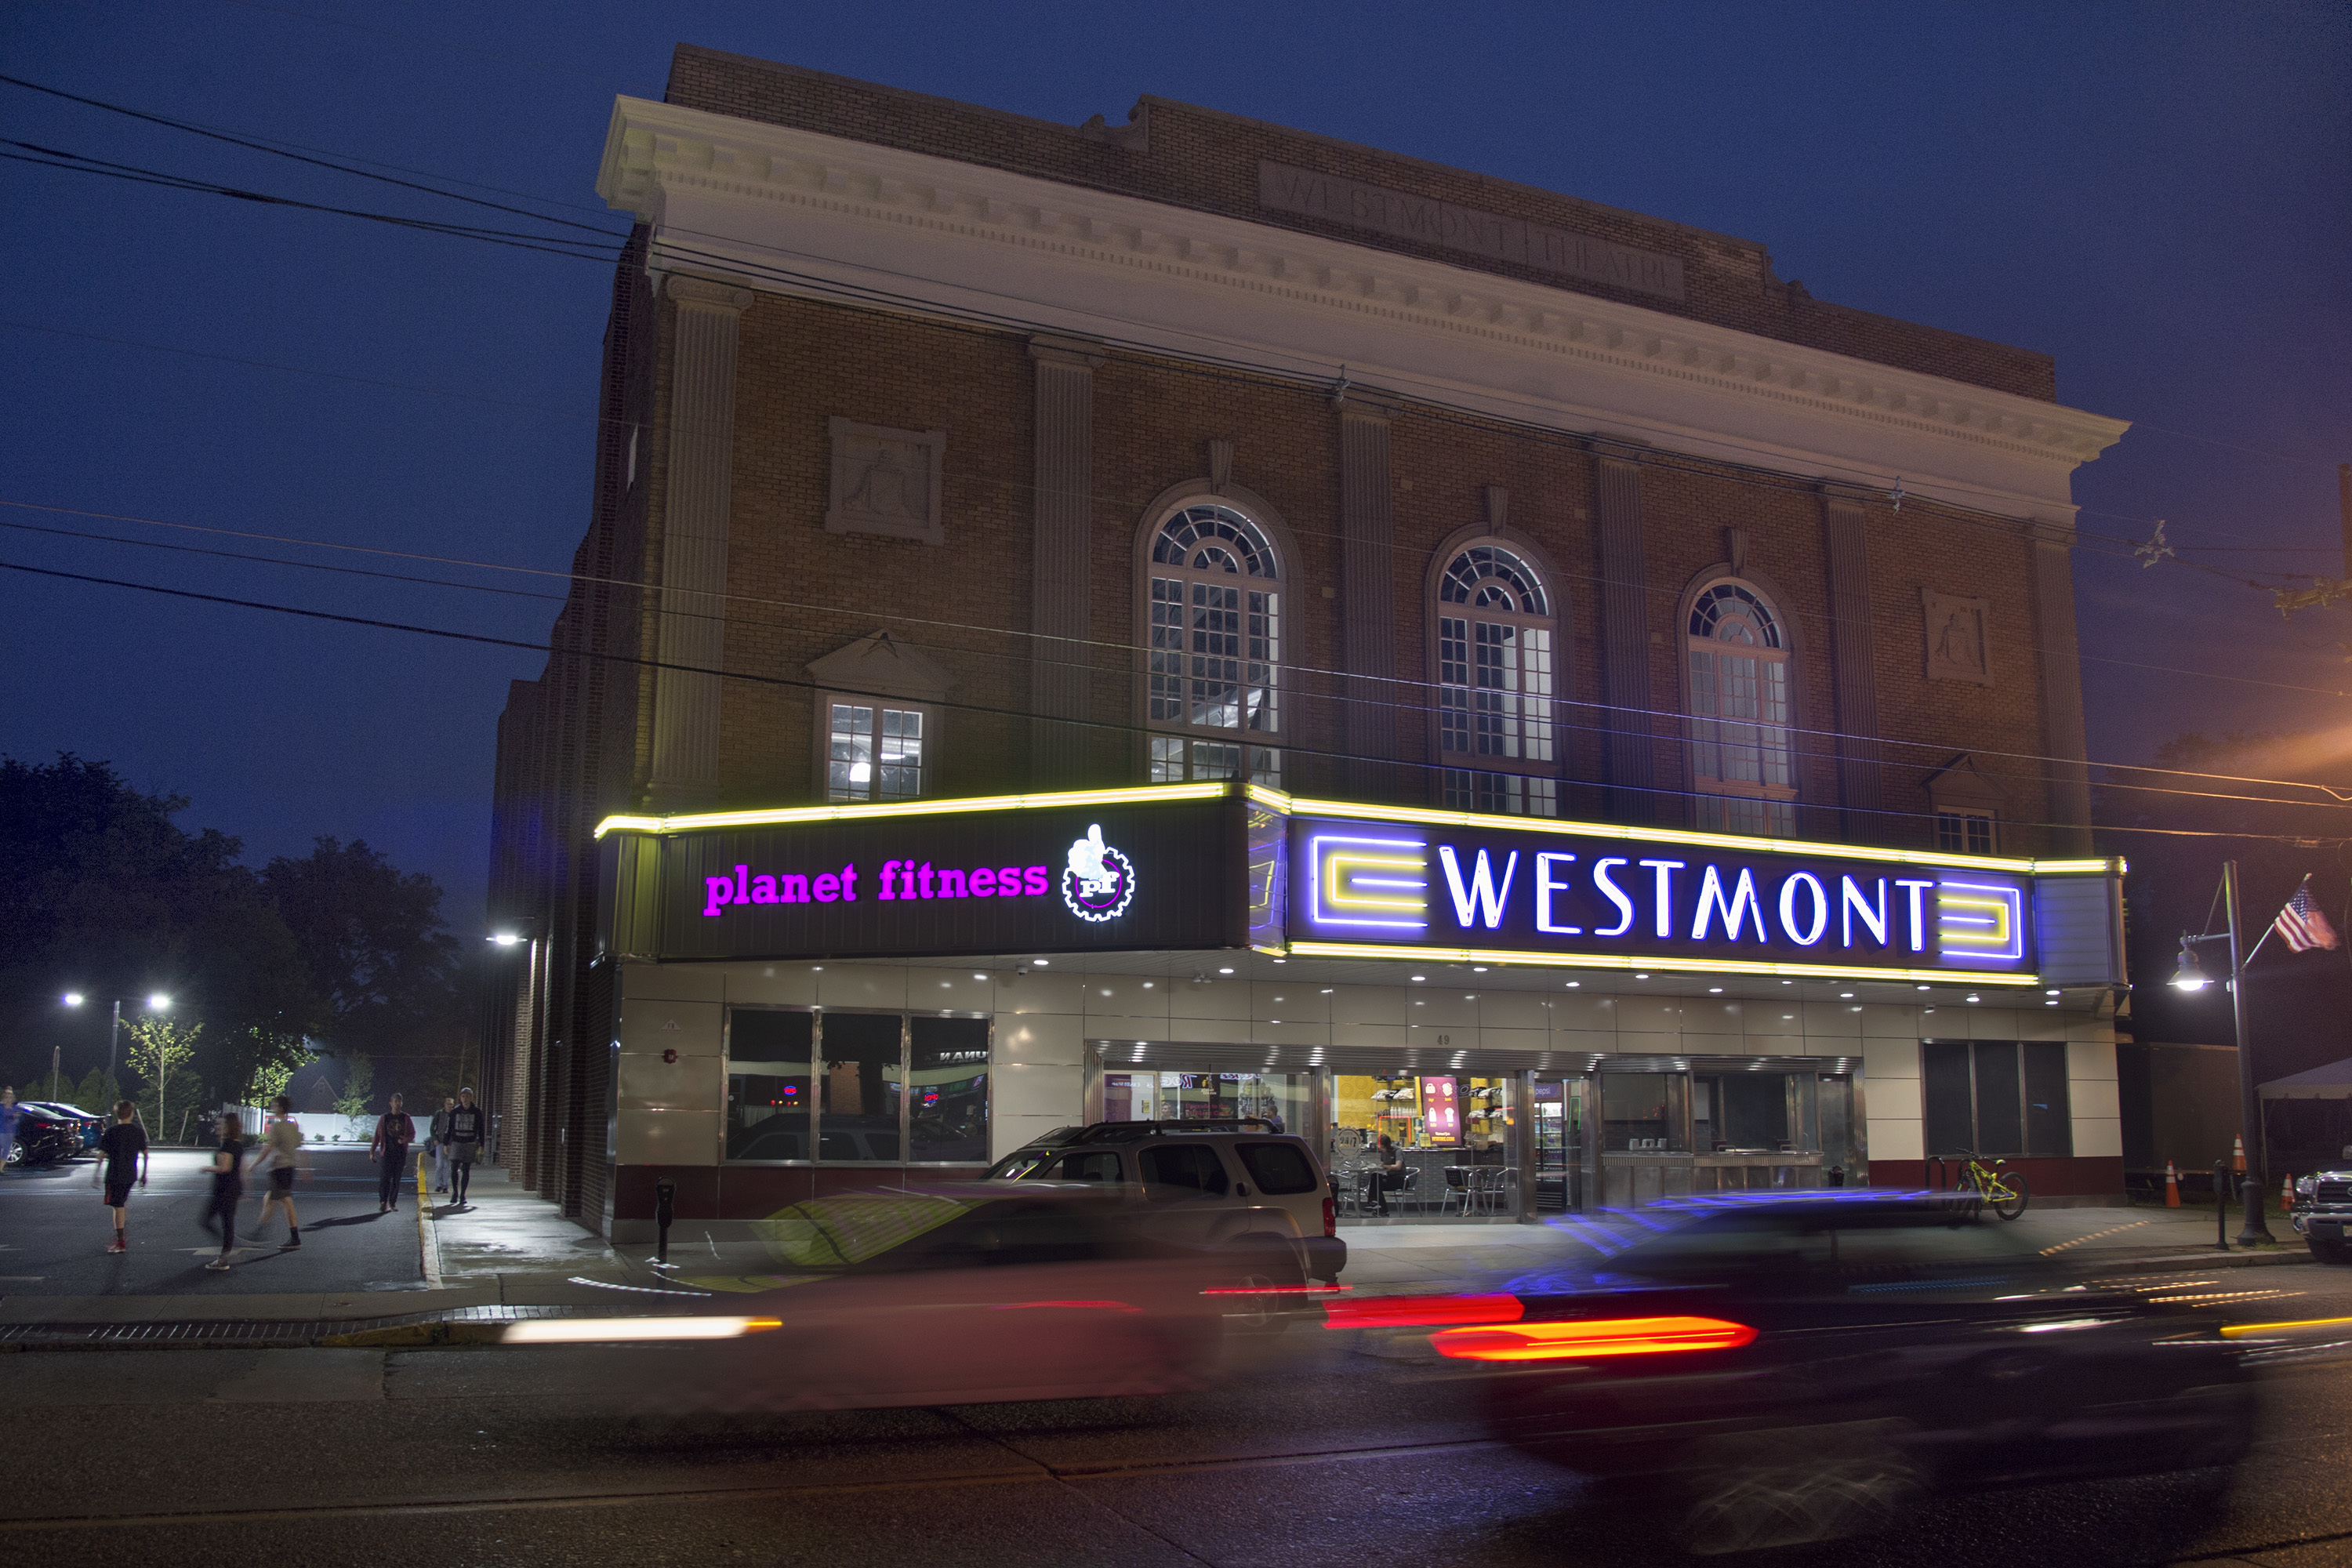 The former Westmont Theater on Haddon Avenue in Haddon Township May 30, 2017 is now a 24/7 Planet Fitness.